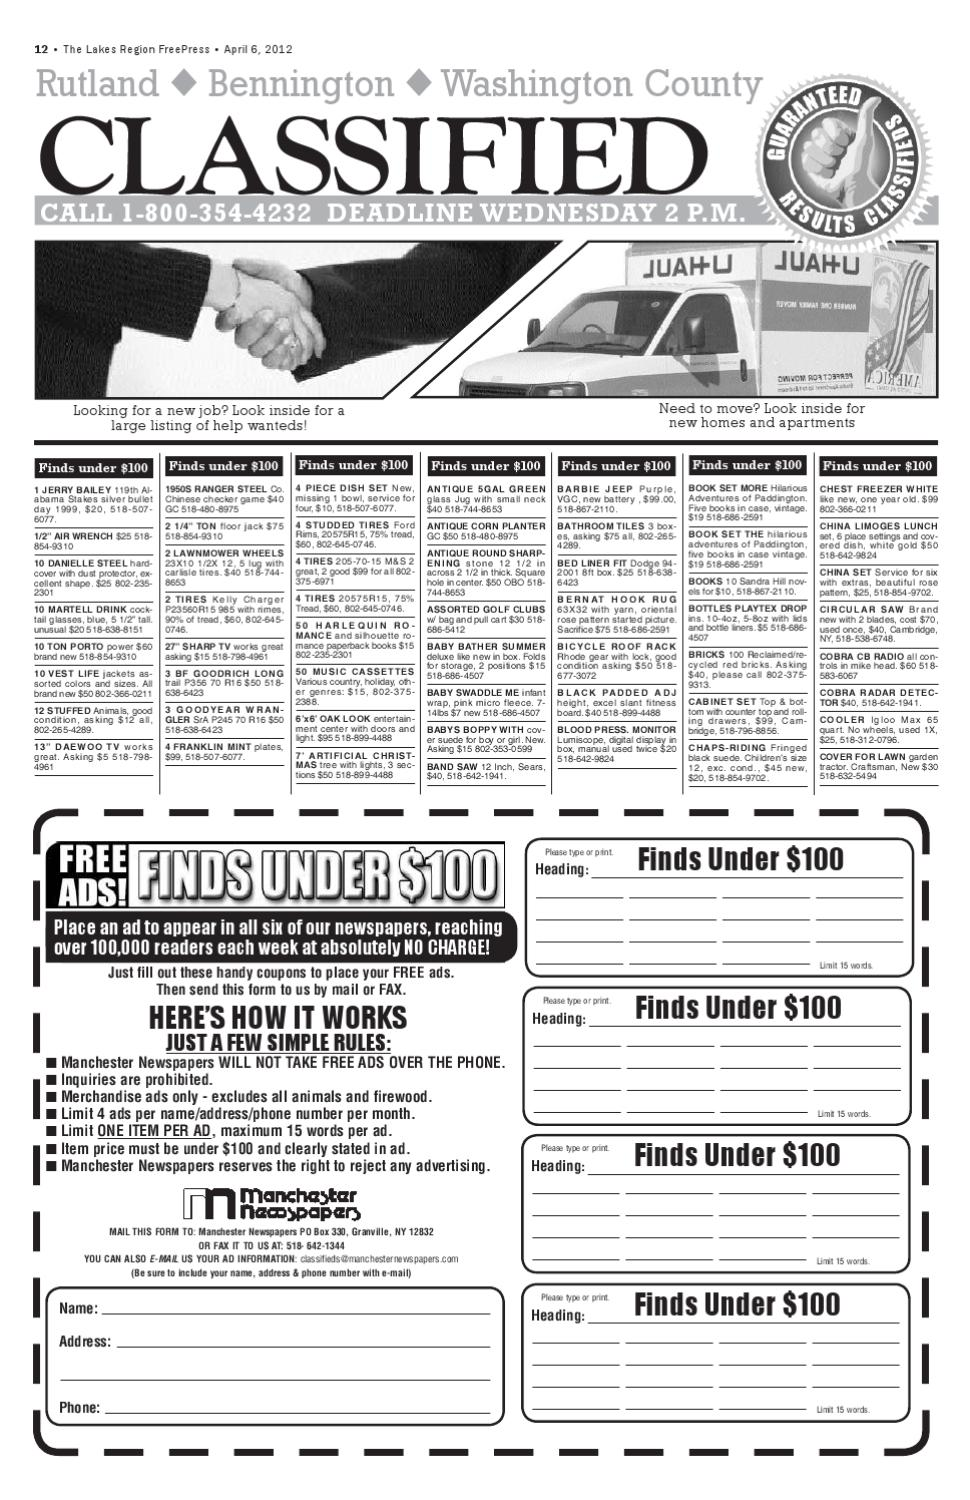 lakes classifieds 4-6-12 pdf-web by Andrew Jones - issuu